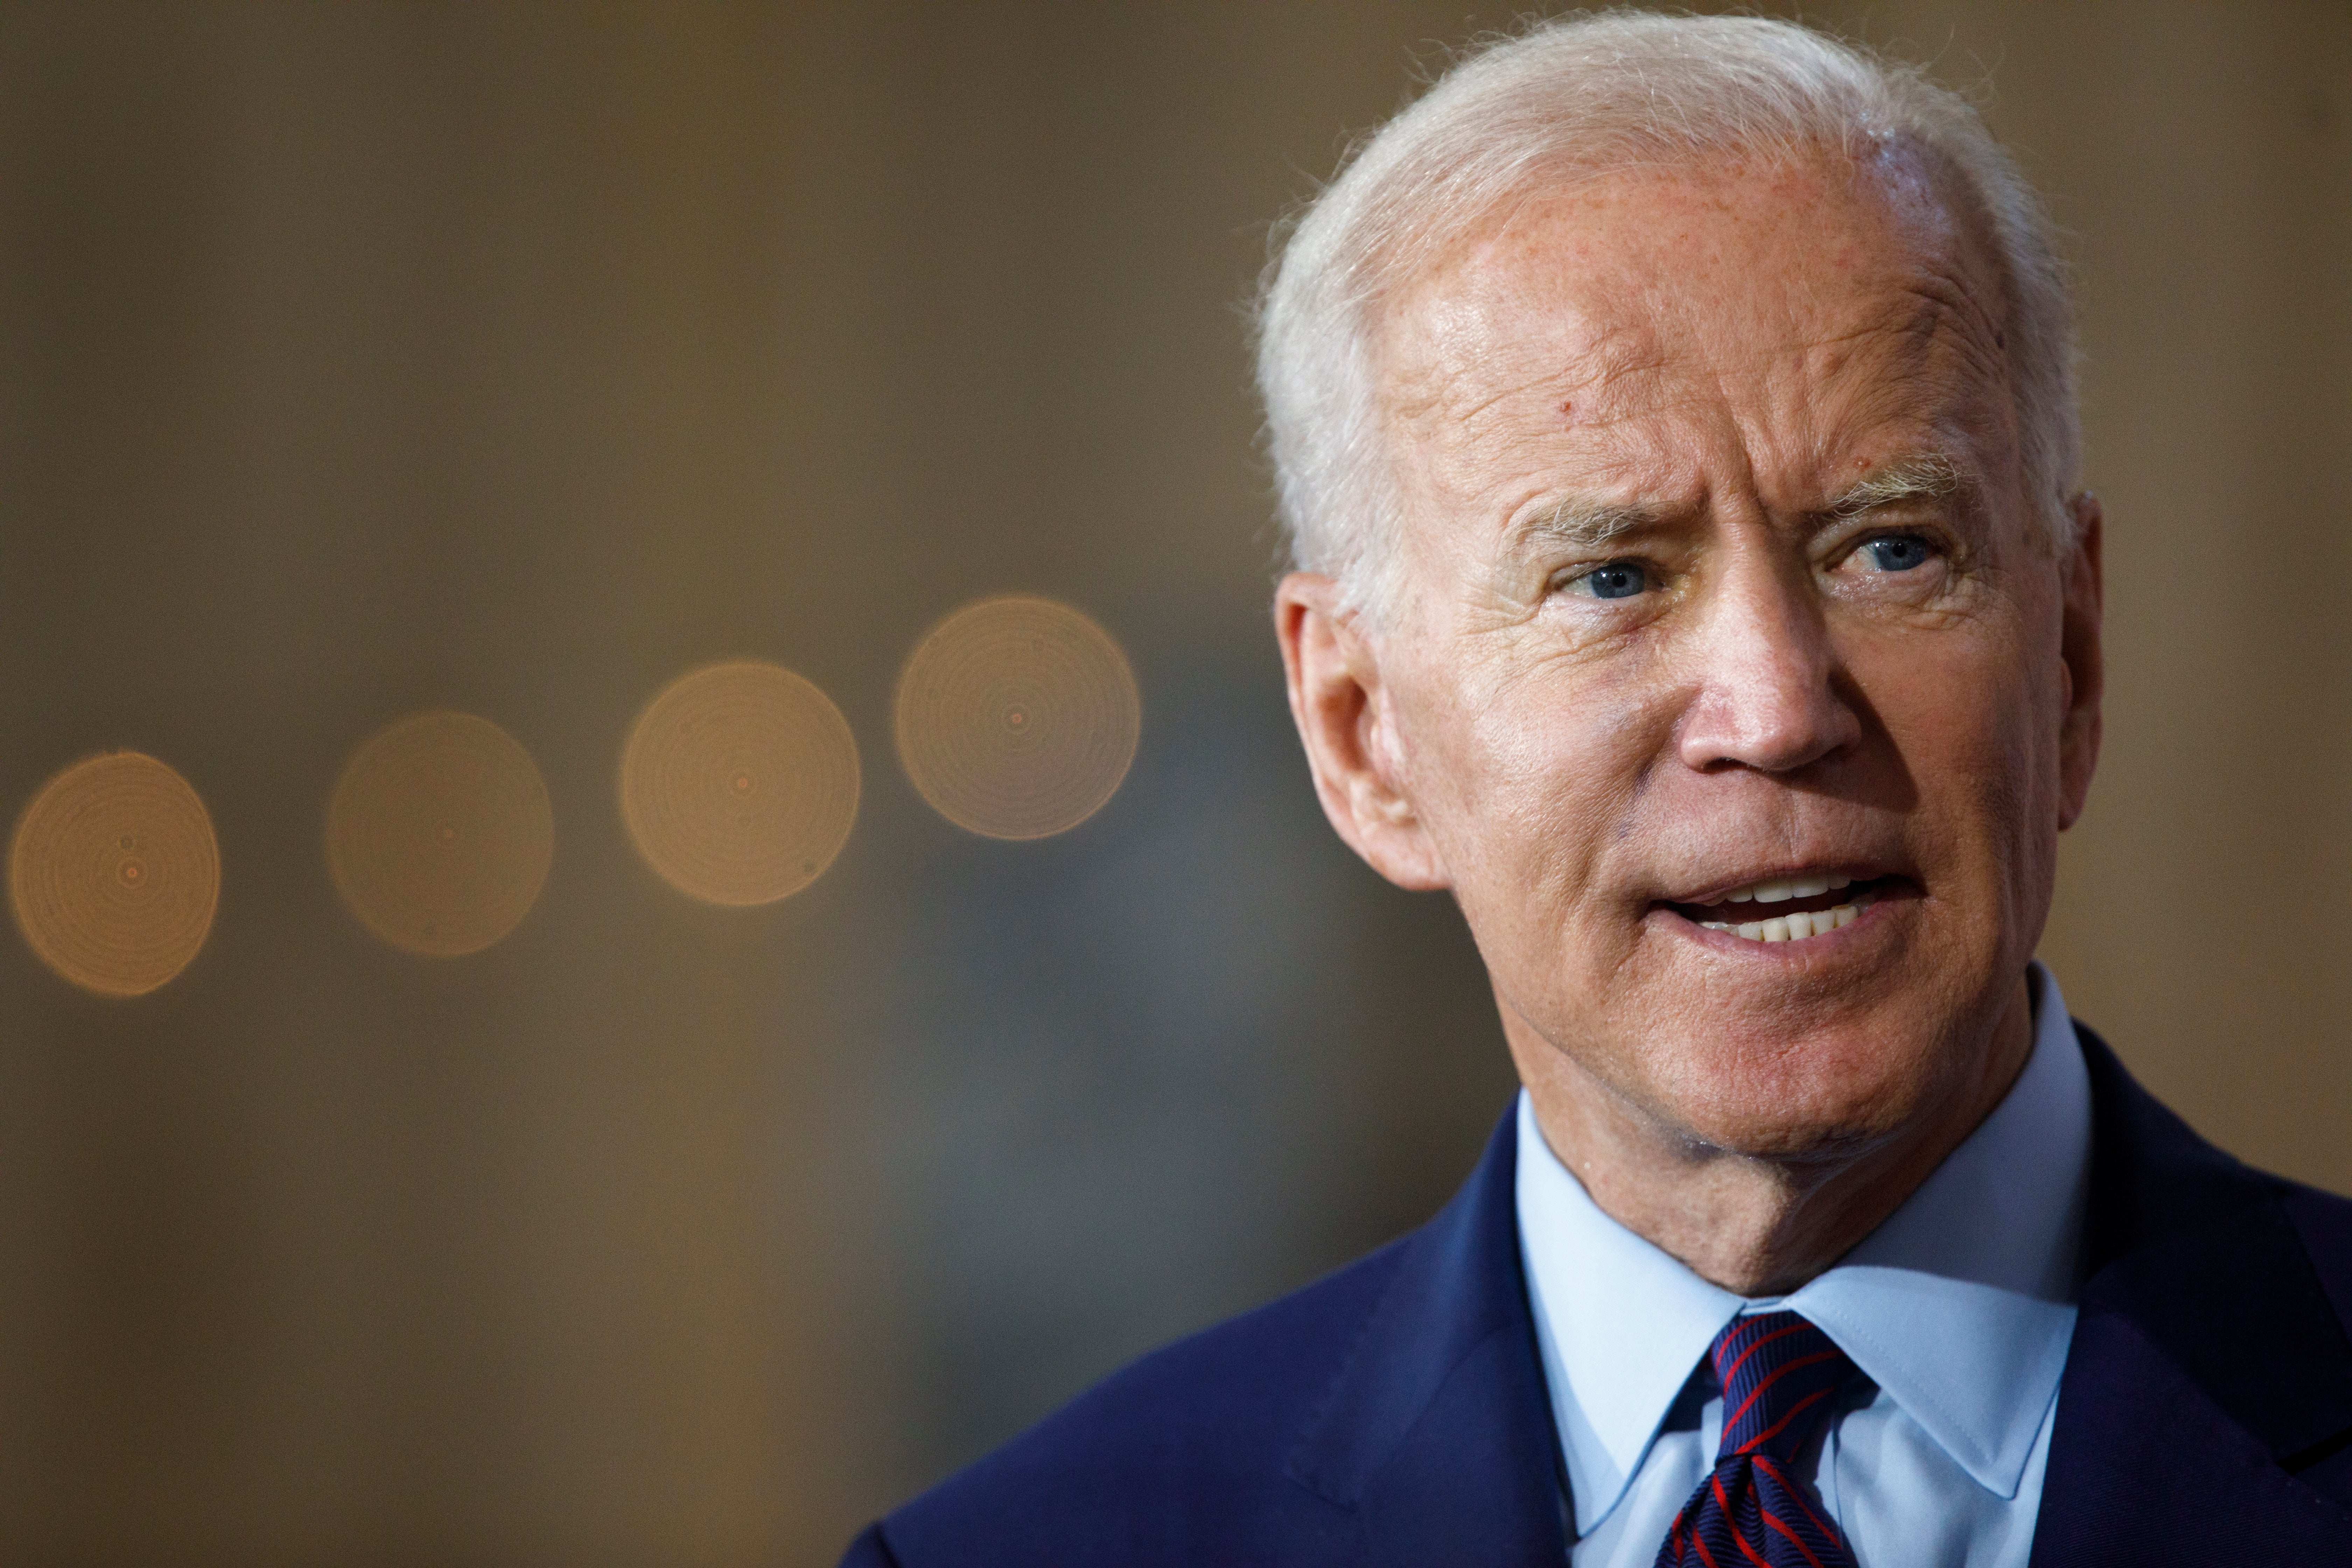 Opinion: I'm Not Overlooking Joe Biden's Gaffes Just Because Donald Trump Is A Racist Simpleton